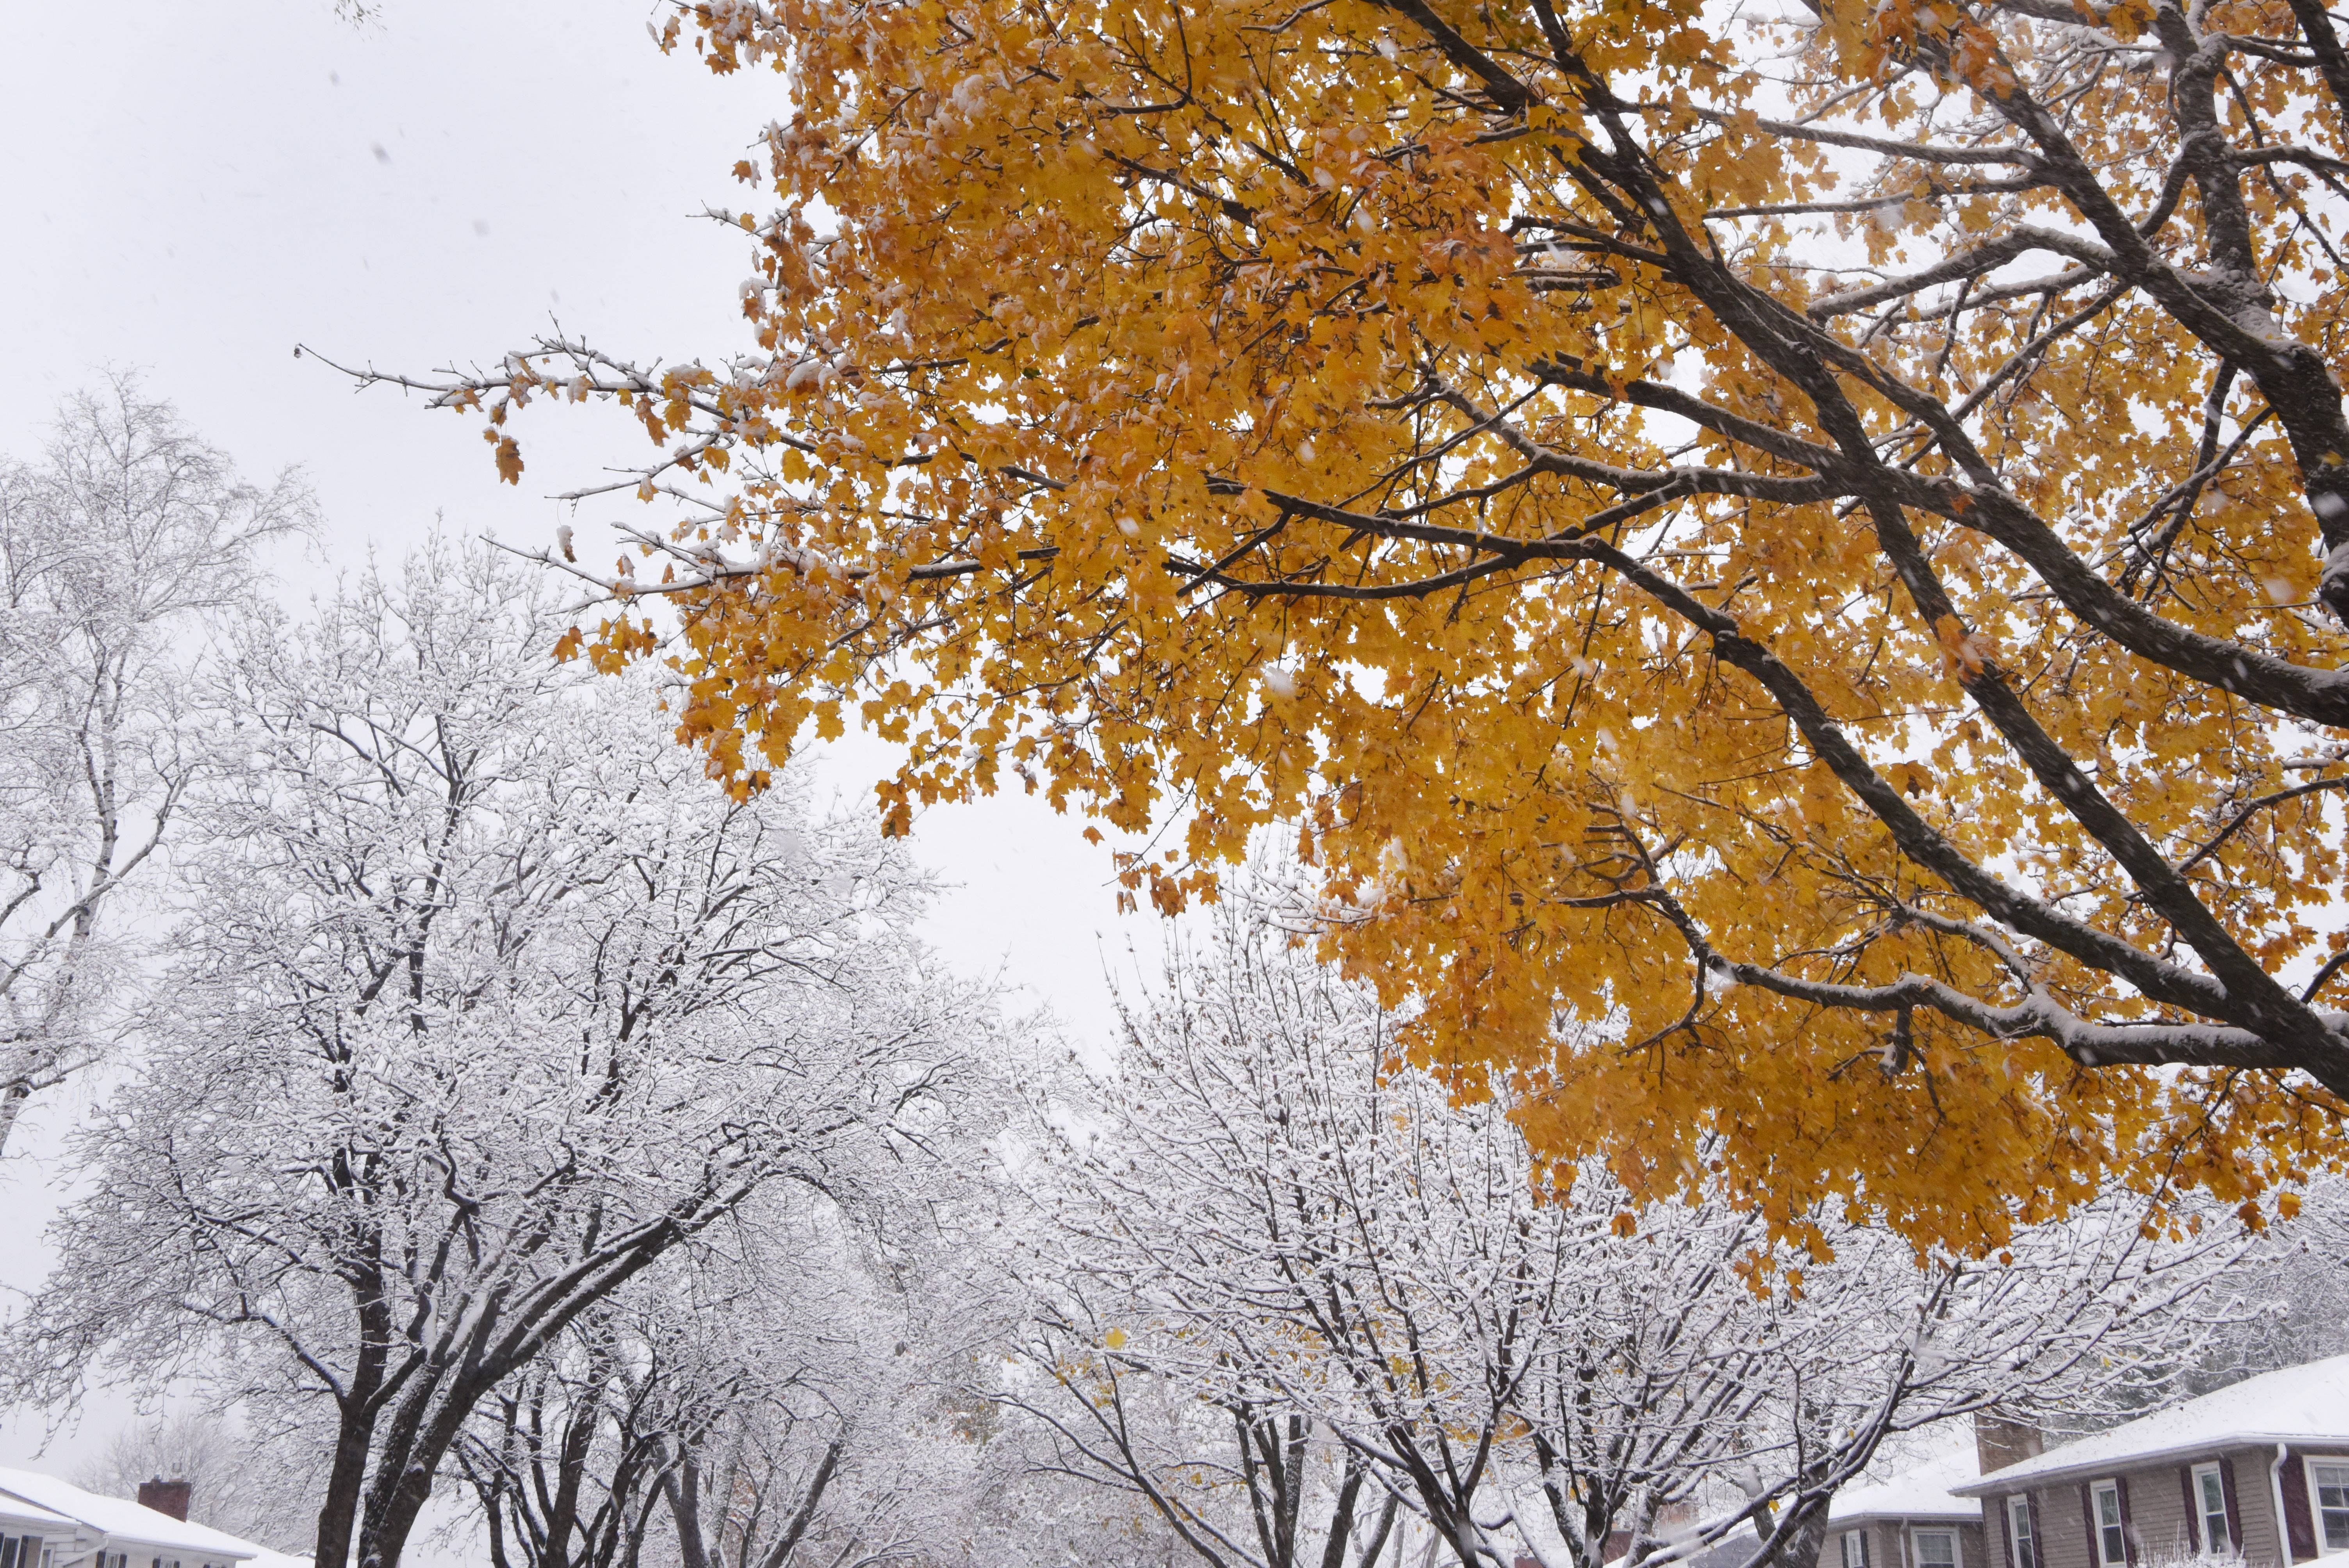 Snow clinging to the branches of bare trees contrasts with the golden leaves of a maple tree in the Pioneer Park neighborhood of Arlington Heights Friday morning.